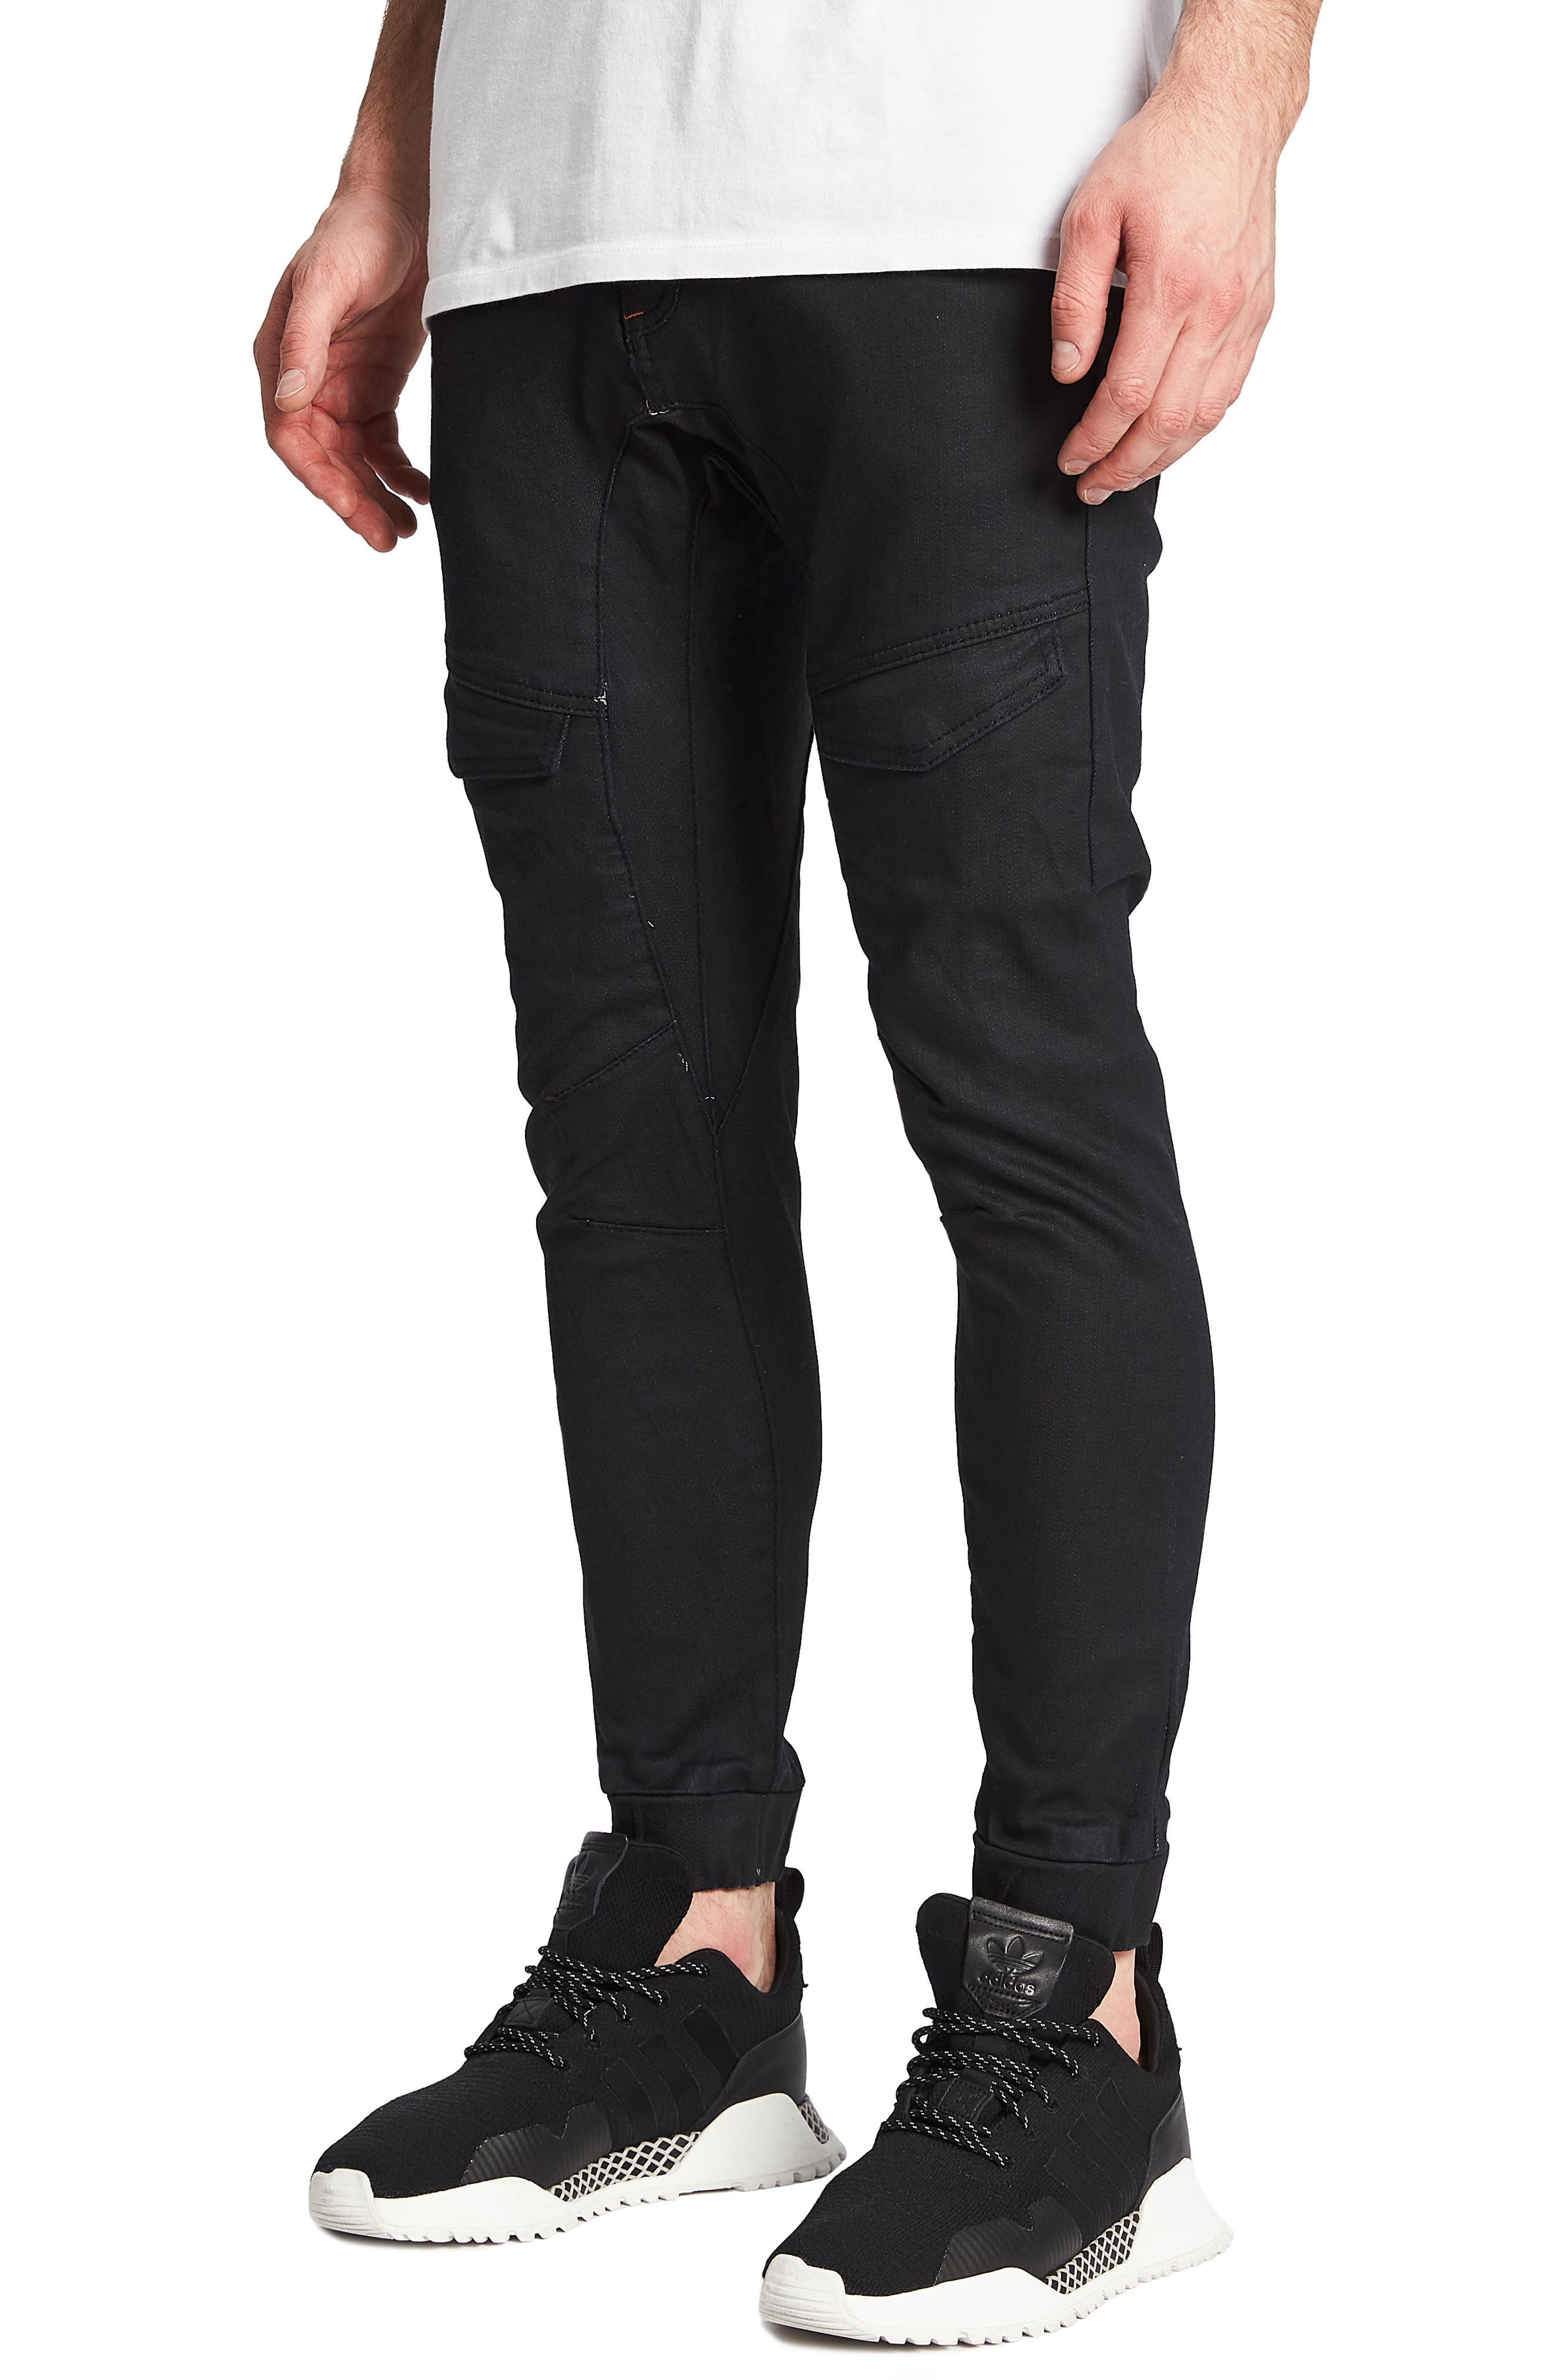 Flight Skinny Denim Jogger Pants,                             Alternate thumbnail 18, color,